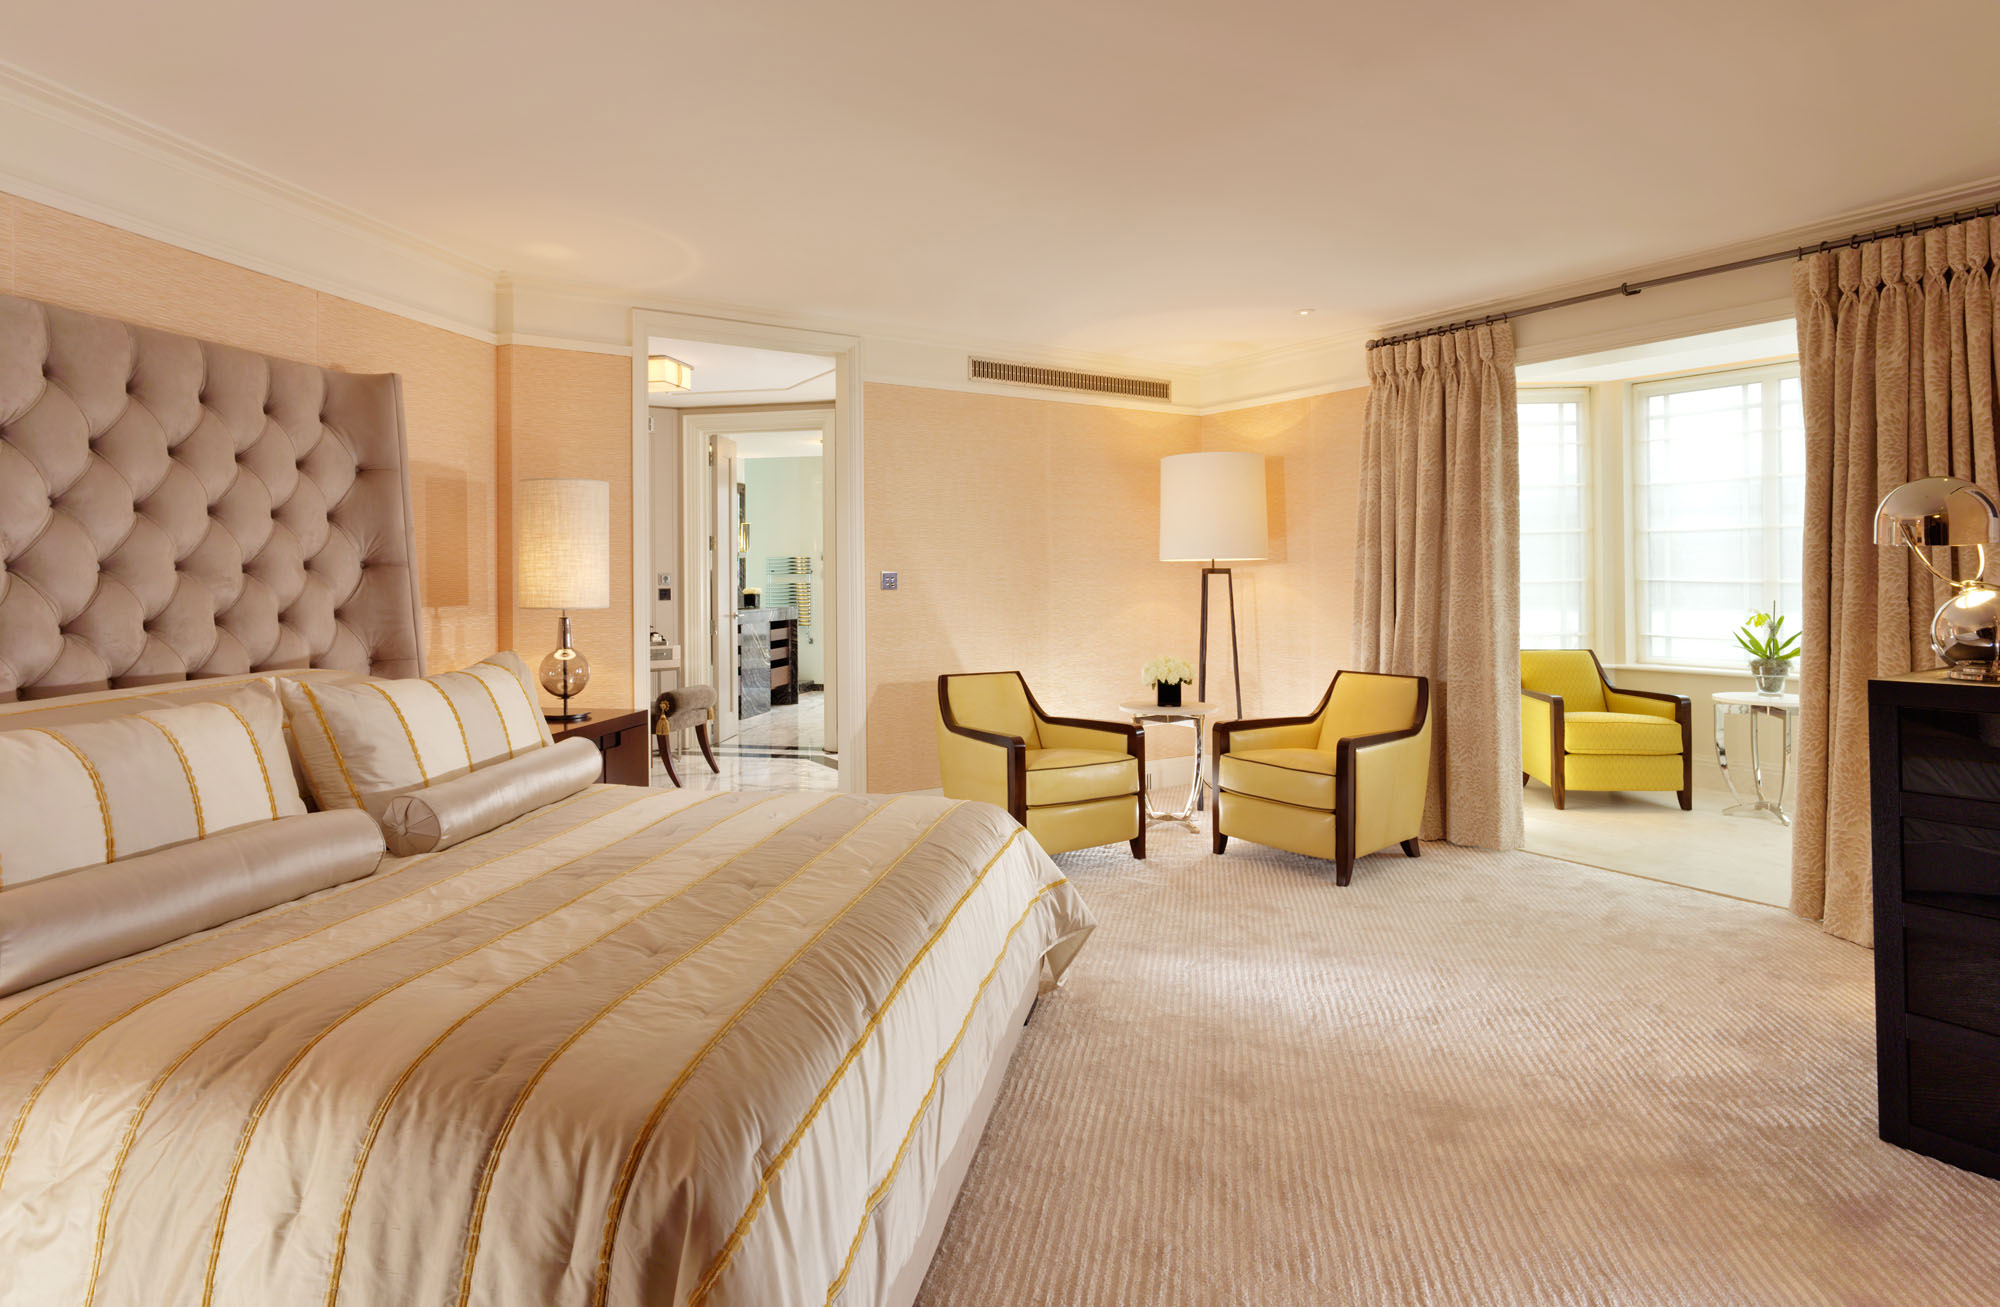 The Dorchester Room